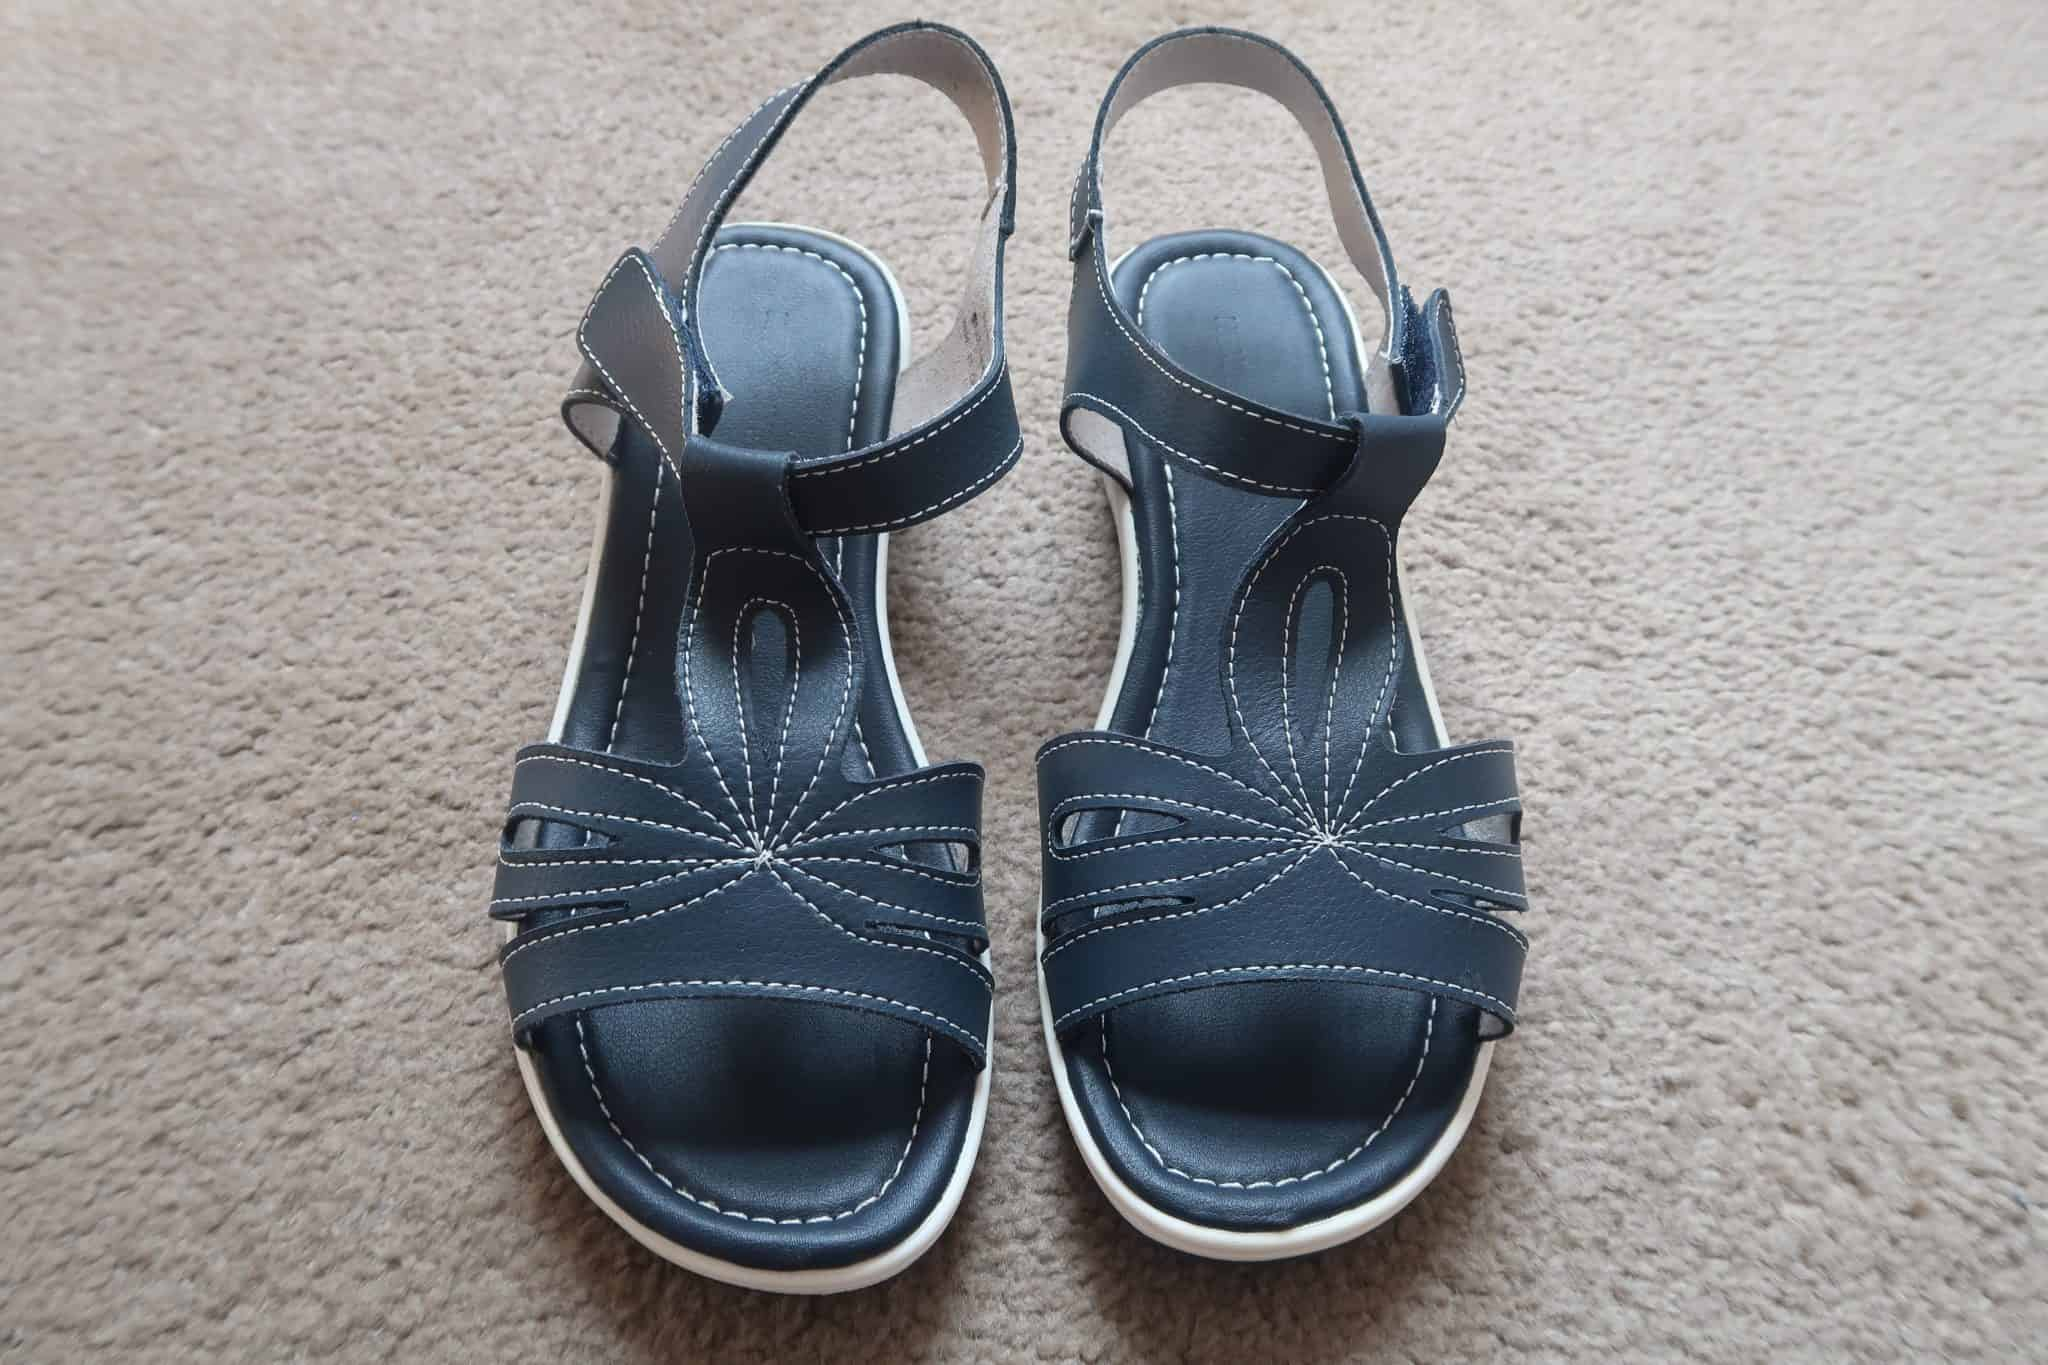 Heavenly Soles T Bar Sandals Extra Wide EEE Fit